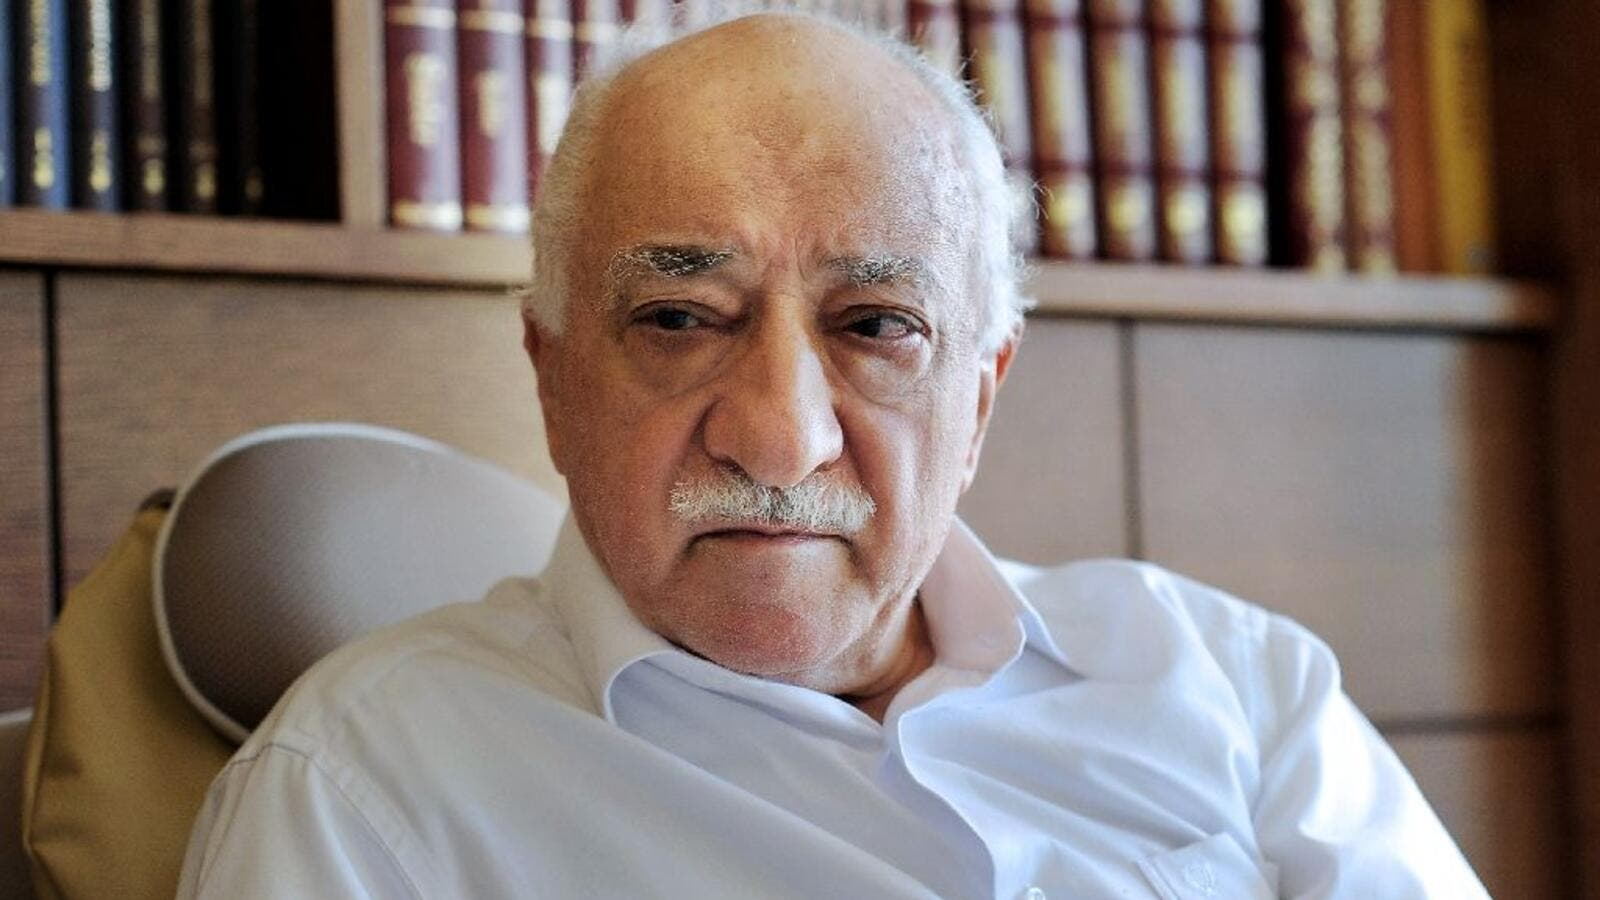 Fethullah Gulen, the US-based Muslim preacher, is blamed for orchestrating the attempted Turkish coup. (AFP/File)